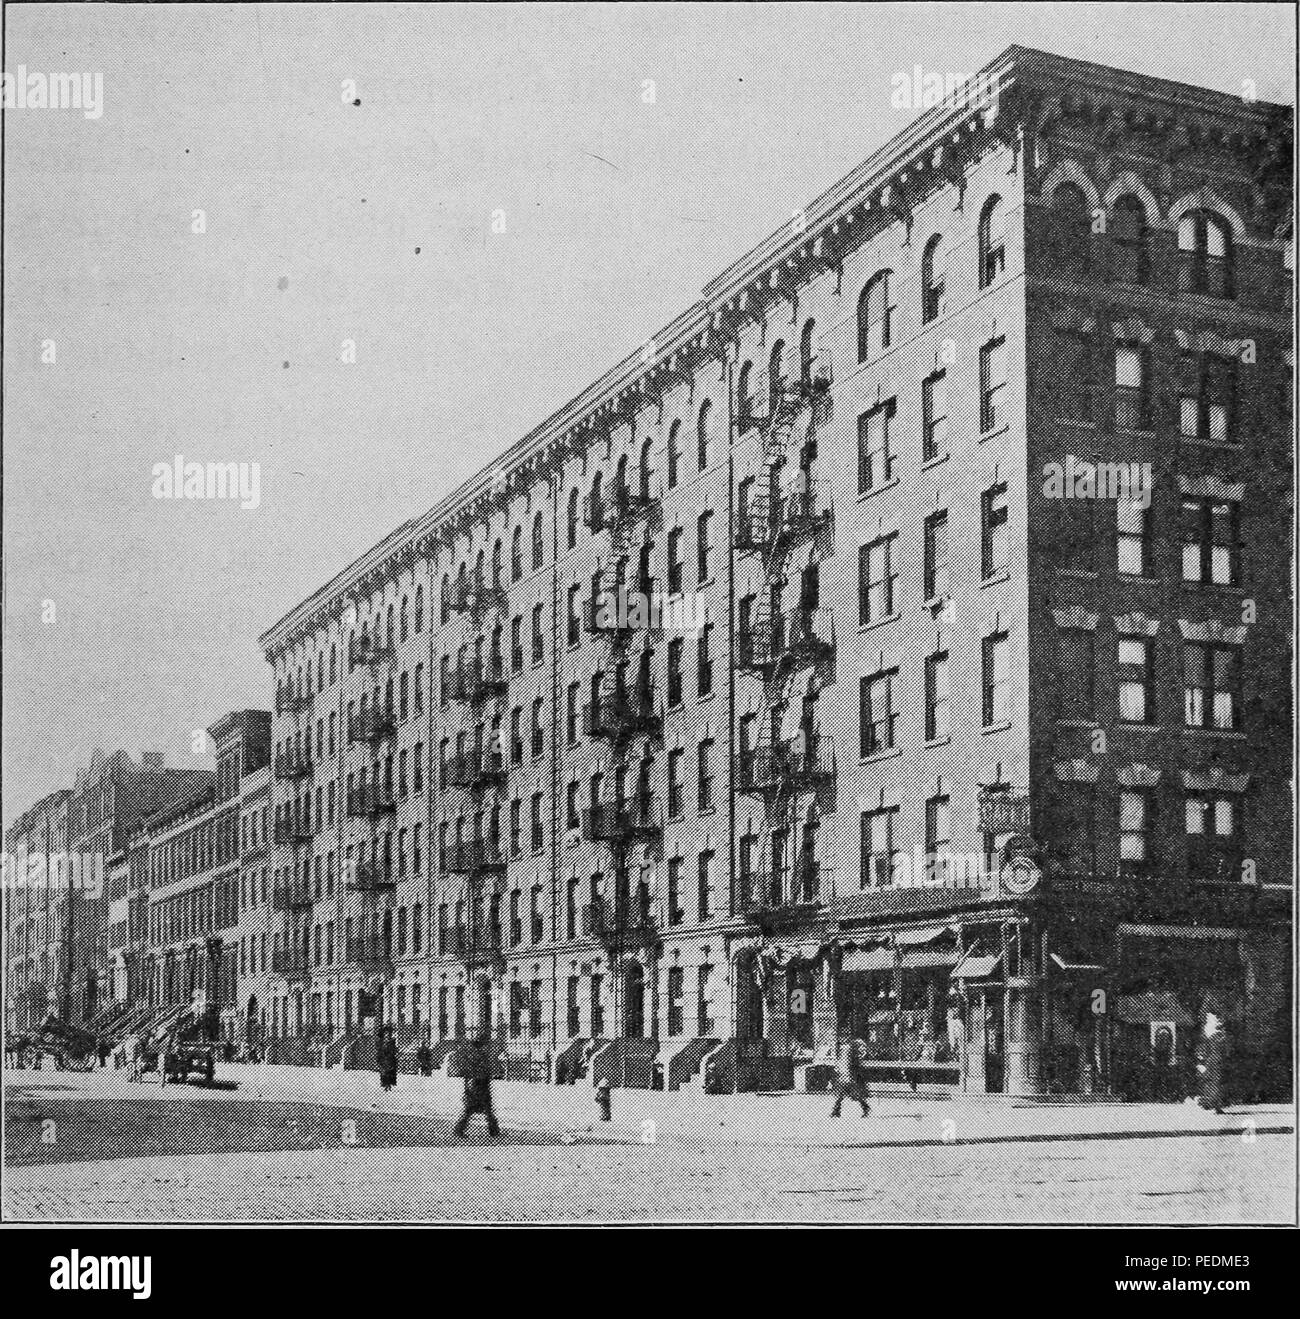 Engraving of a tenement building, New York City, New York, 1912. Courtesy Internet Archive. () - Stock Image